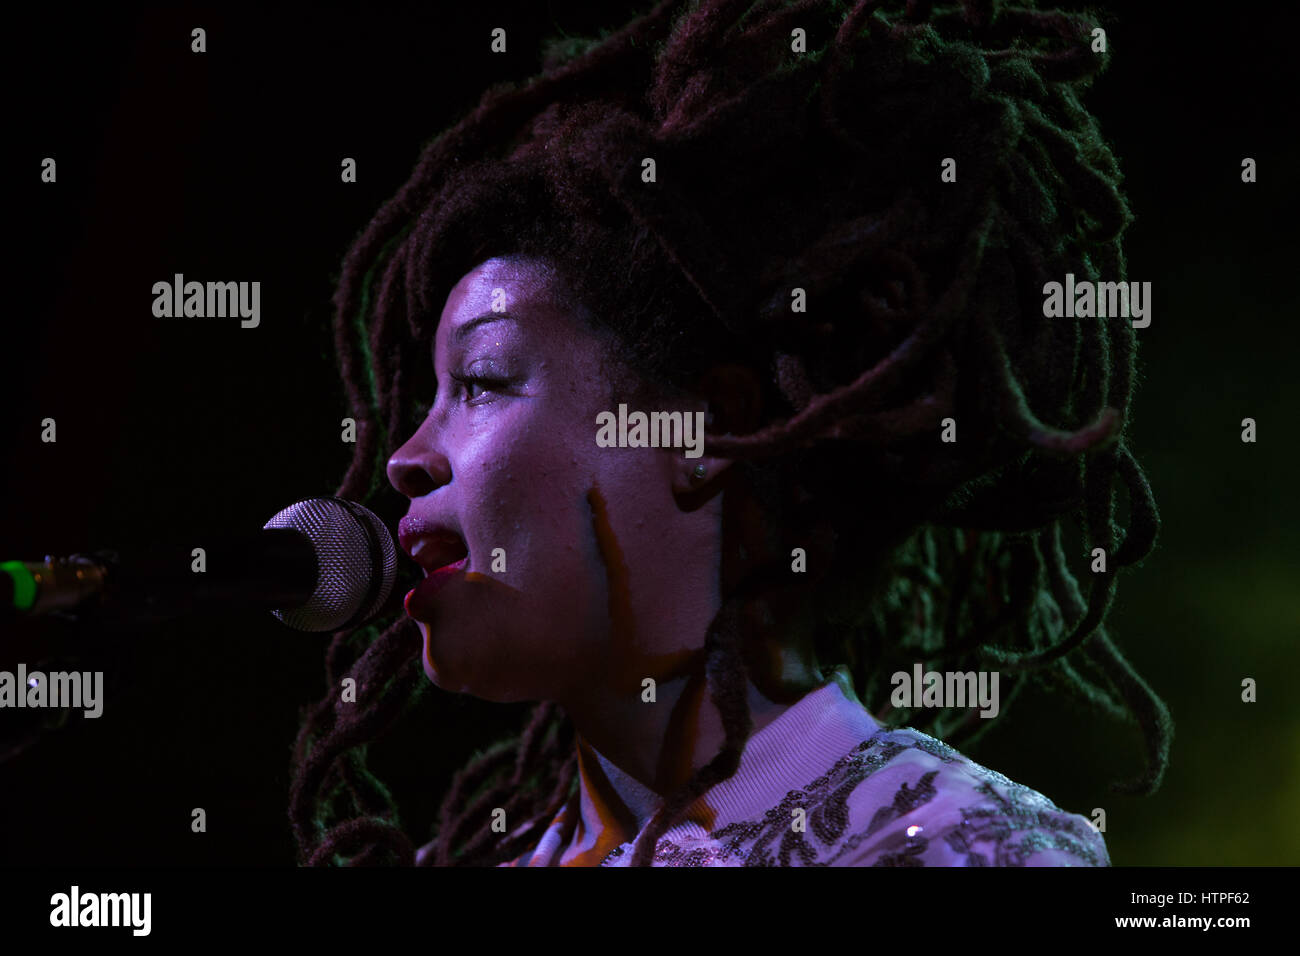 February 7th, 2017 - Toronto, Ontario, Canada: Nashville singer Valerie June performs at The Great Hall - Stock Image